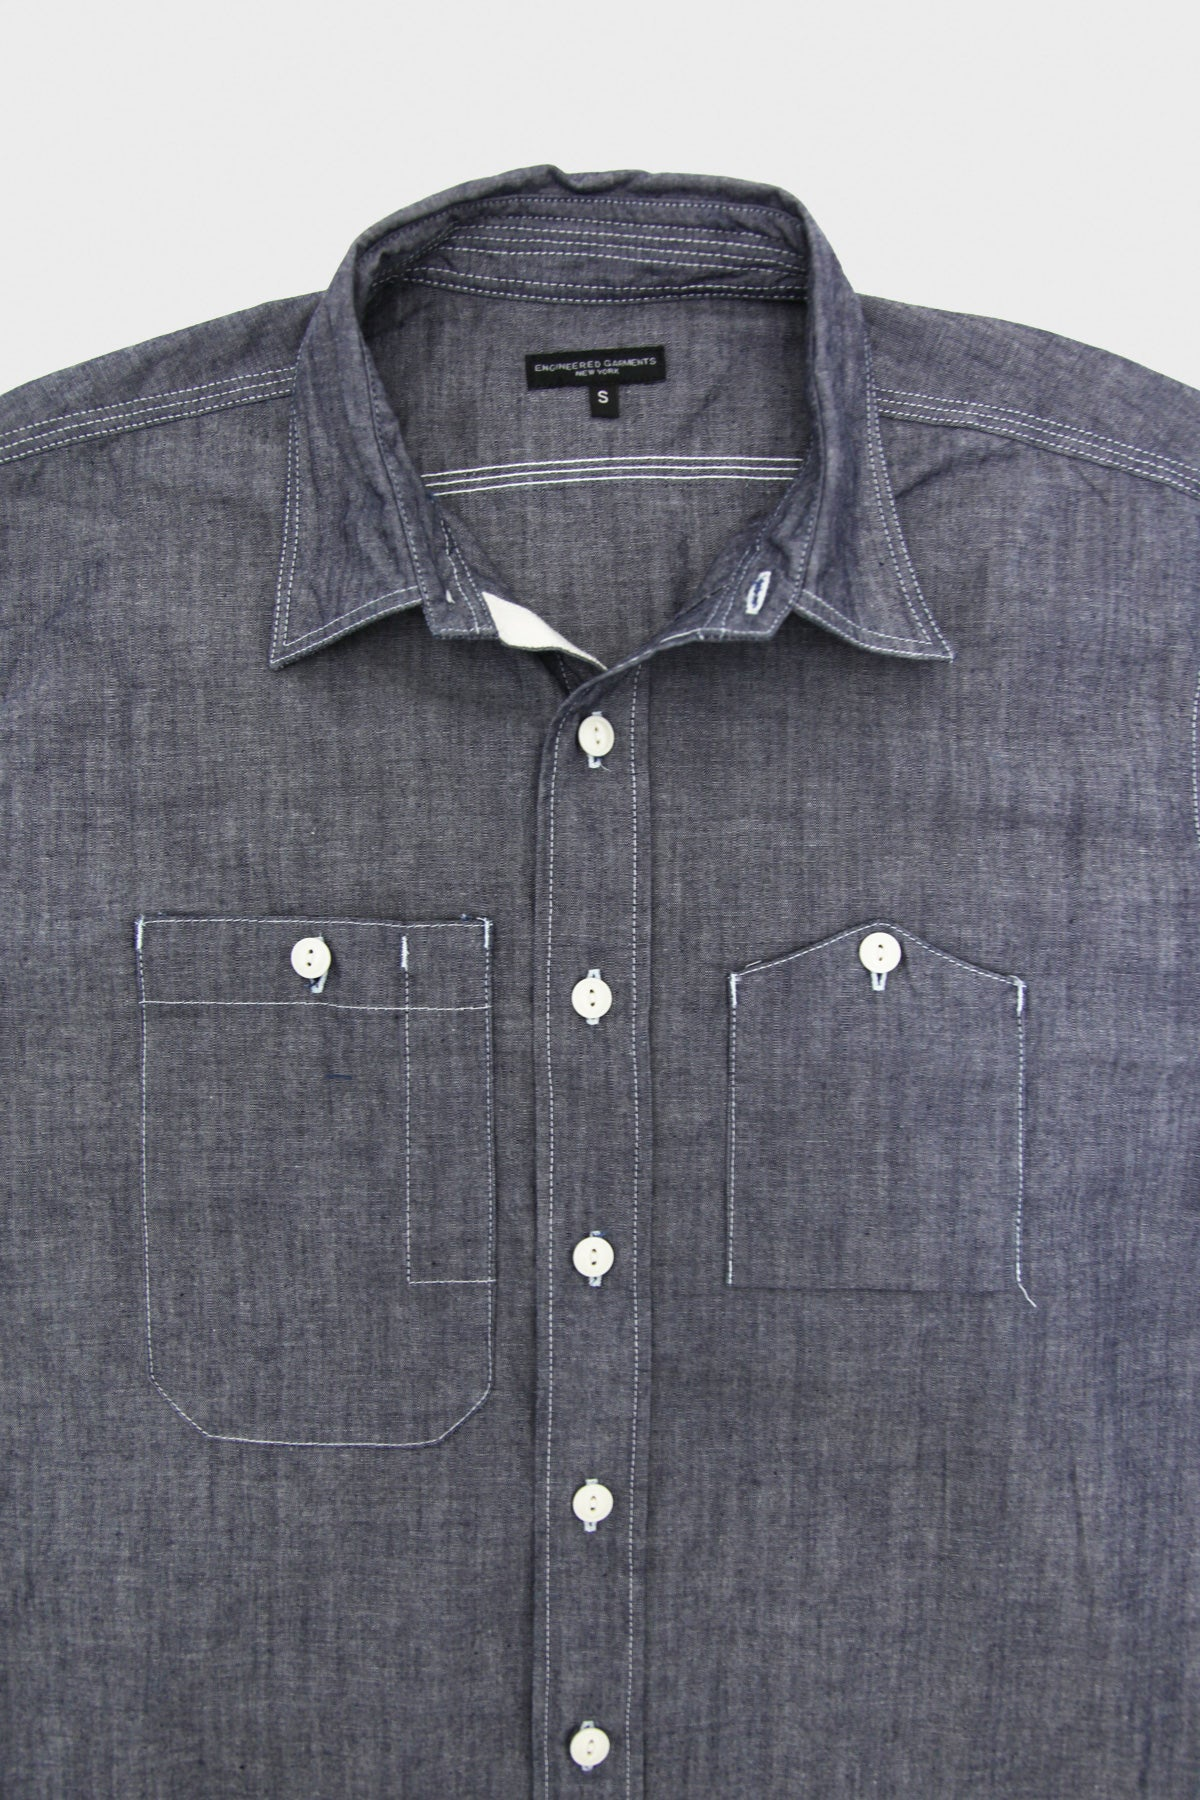 Engineered Garments - Work Shirt - Indigo Cone Cotton Chambray - Canoe Club